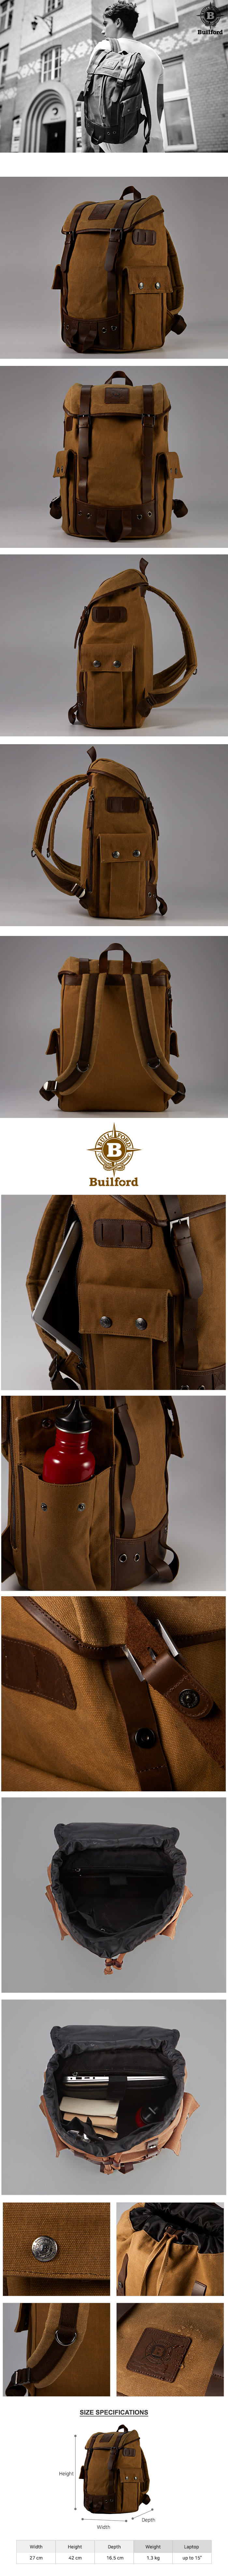 빌포드(BUILFORD) Ranger Backpack (택1)